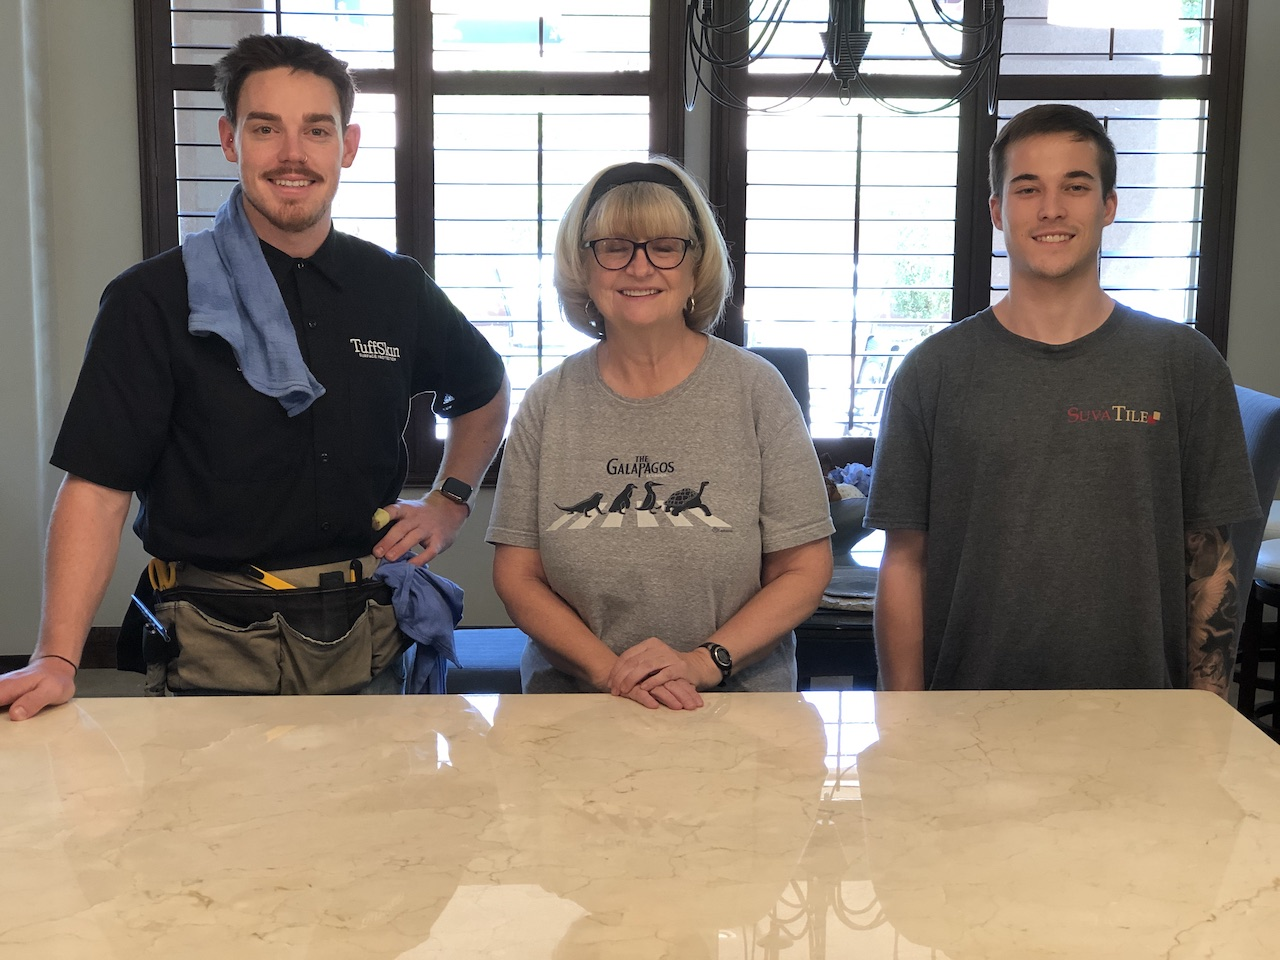 Everyone is Happy! Jake with TuffSkin, Lois the homeowner and Skylar with Suva Tile.